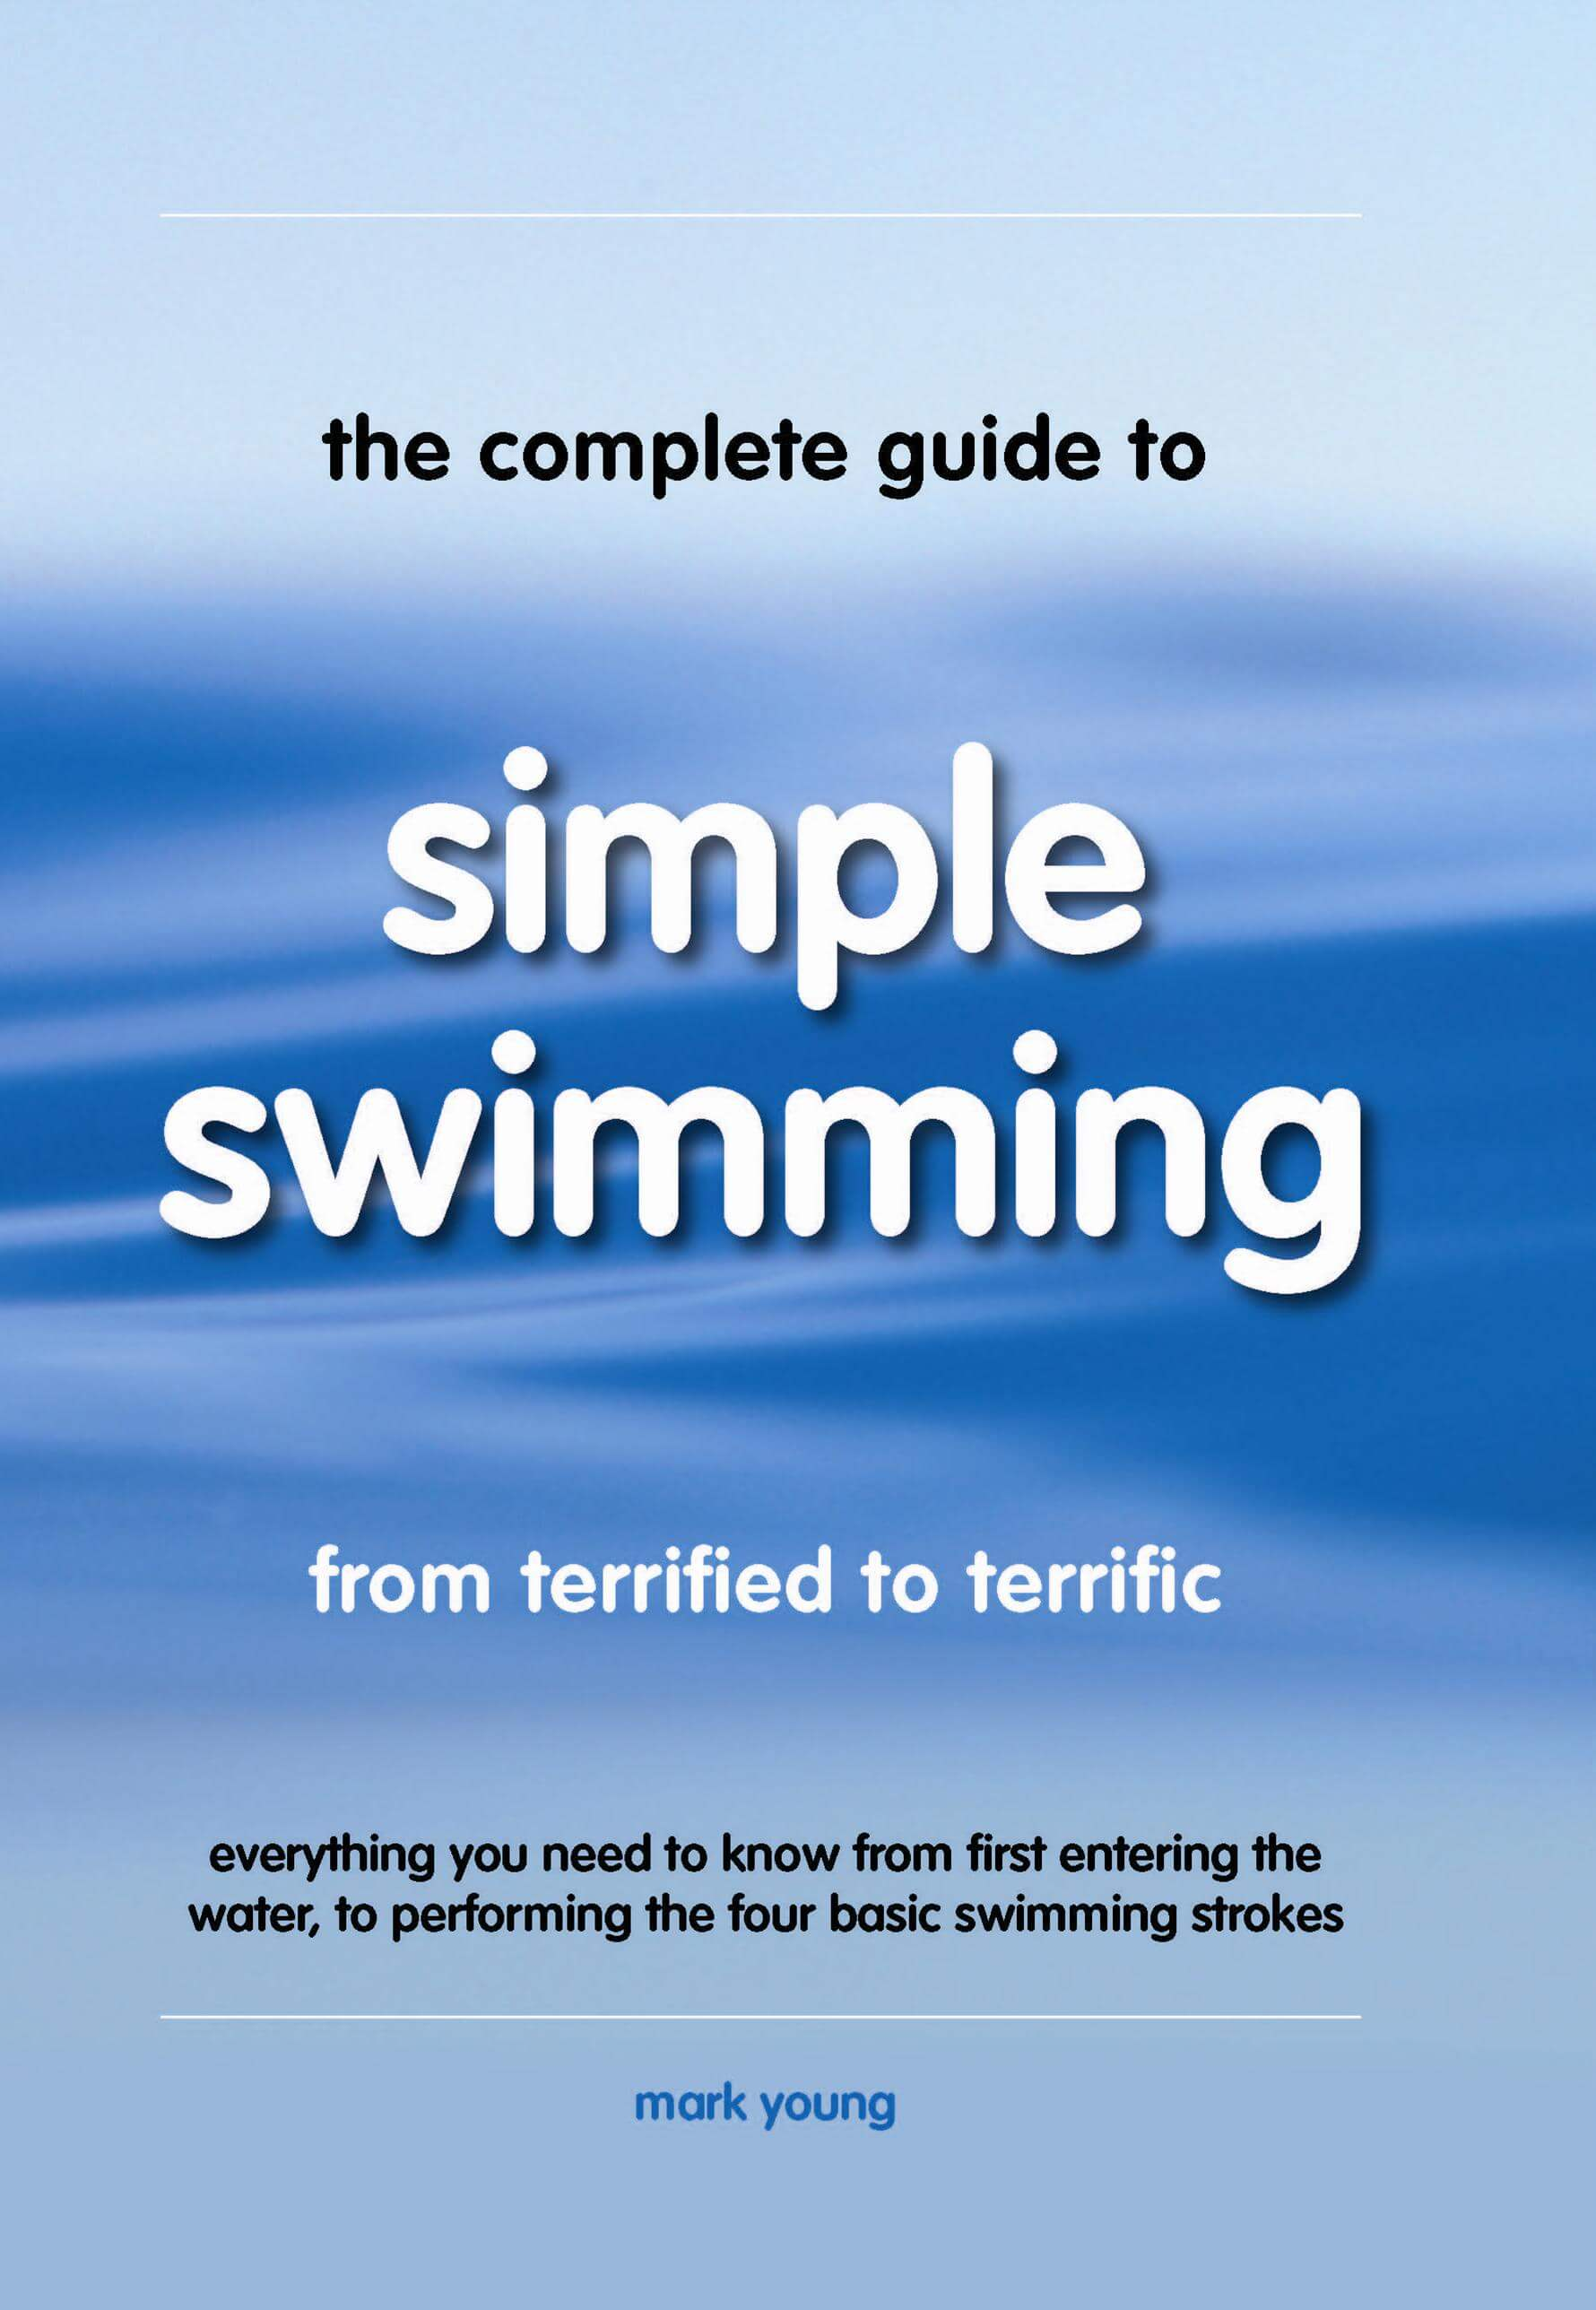 simple swimming technique